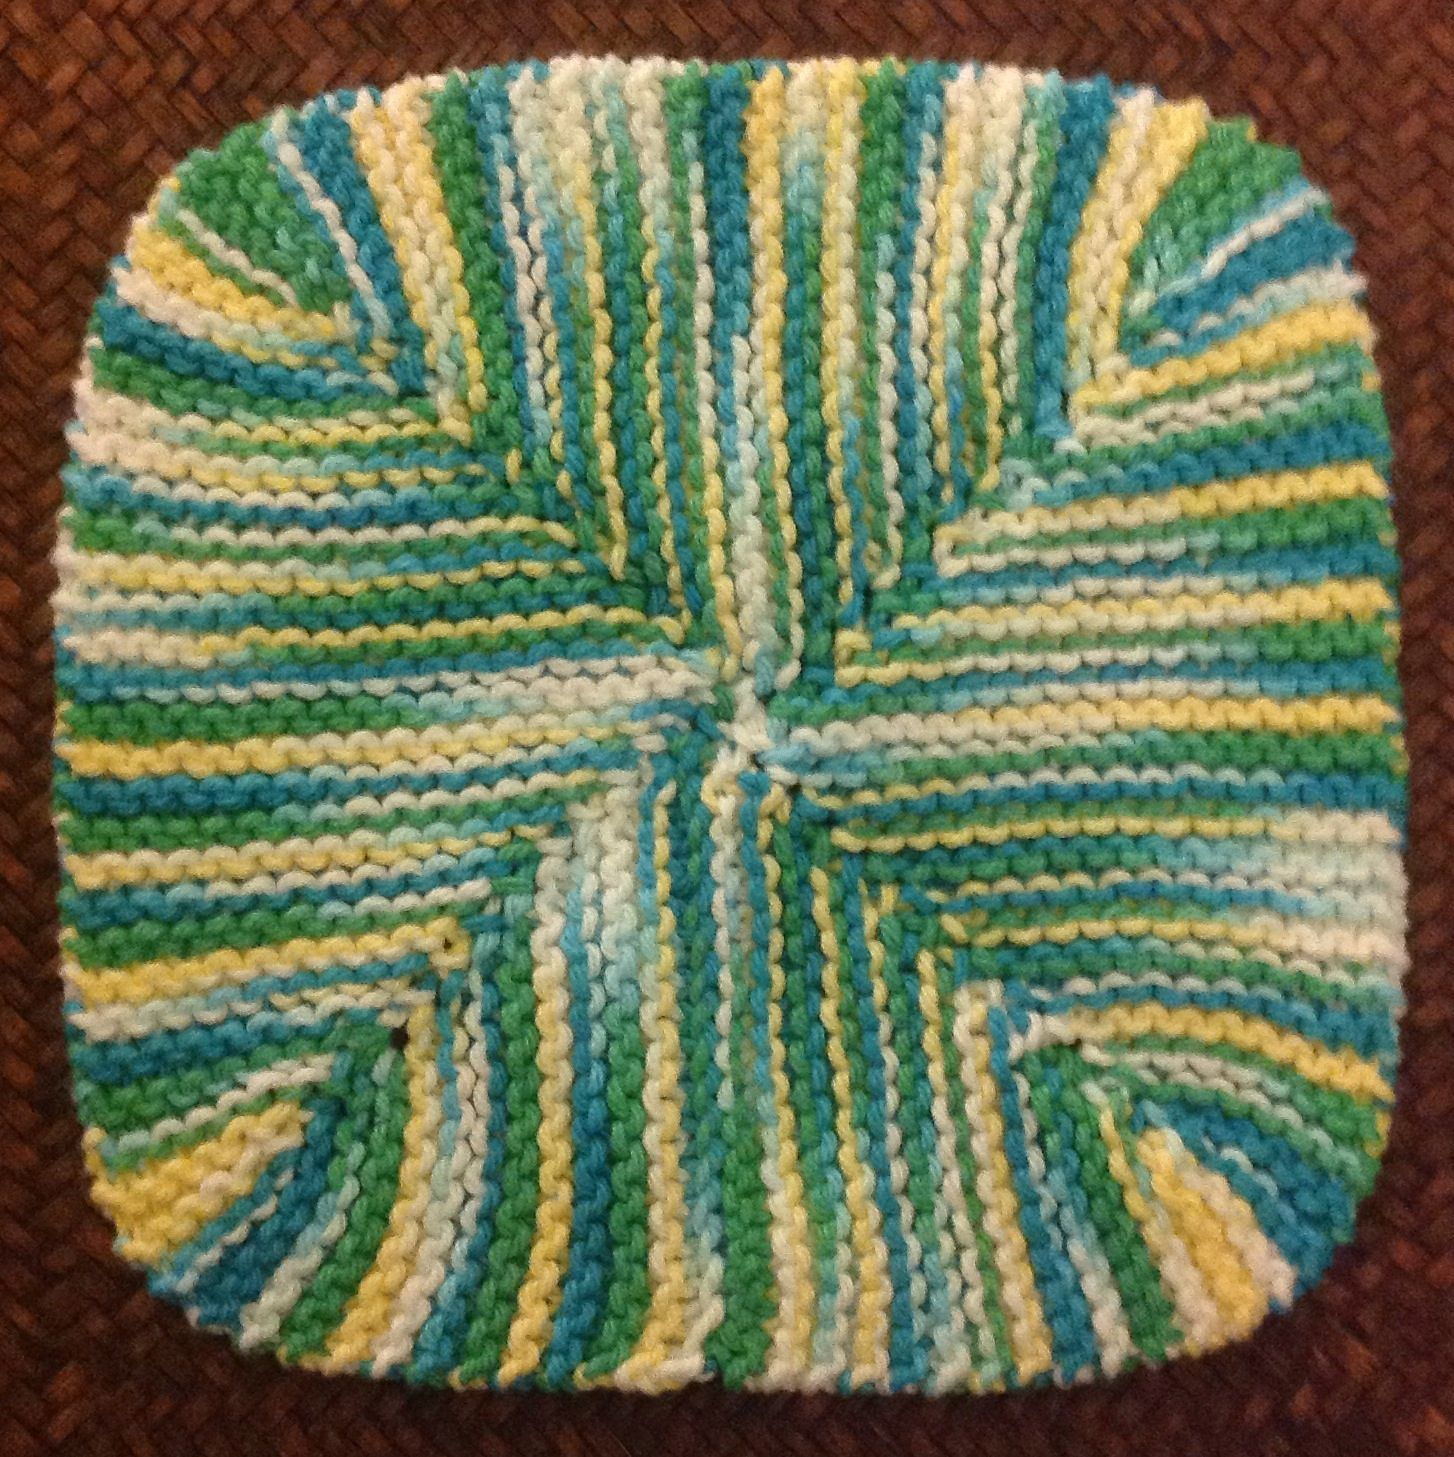 4-Corners Dishcloth By Abigail-1870pearl - Free Knitted Pattern ...